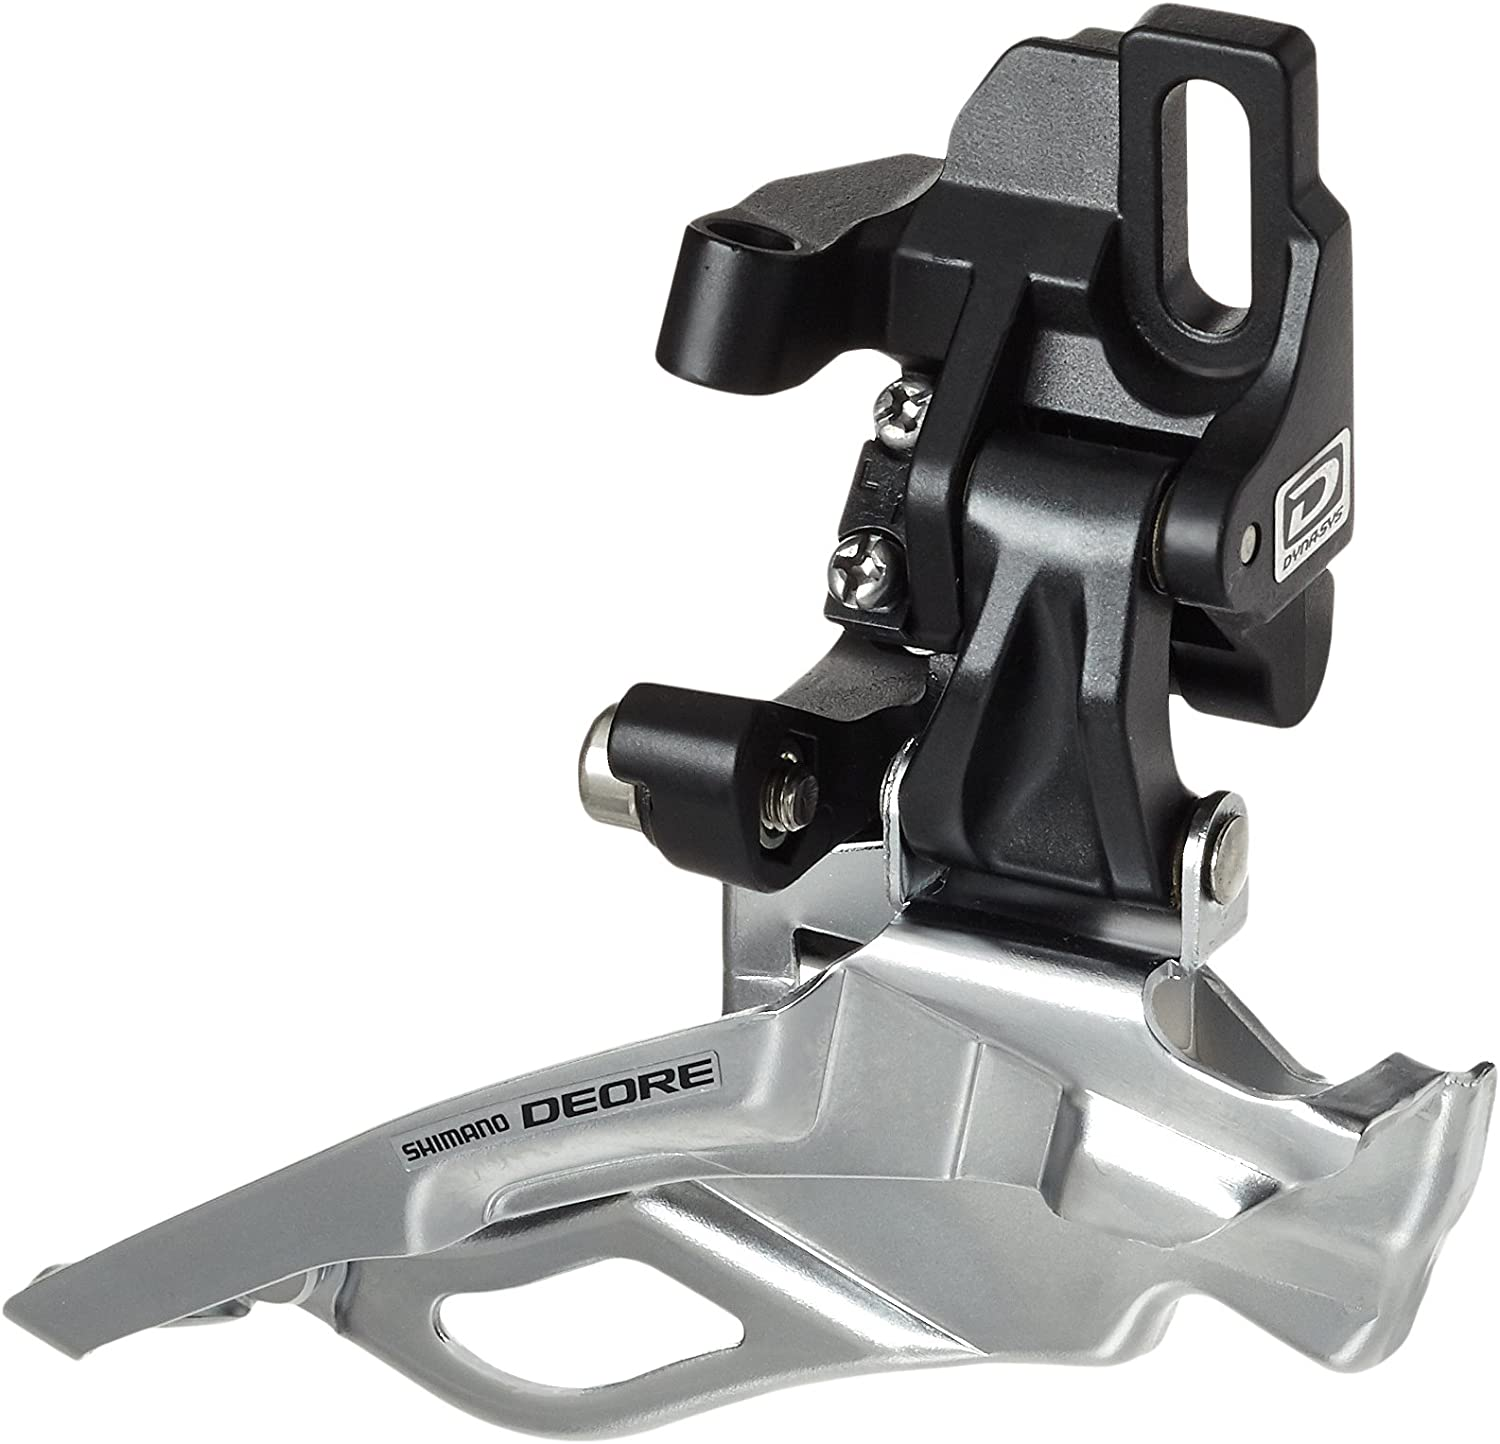 Shimano Deore FD-M611 3 x 10-Speed Triple Top Pull Direct Mount Front Derailleur